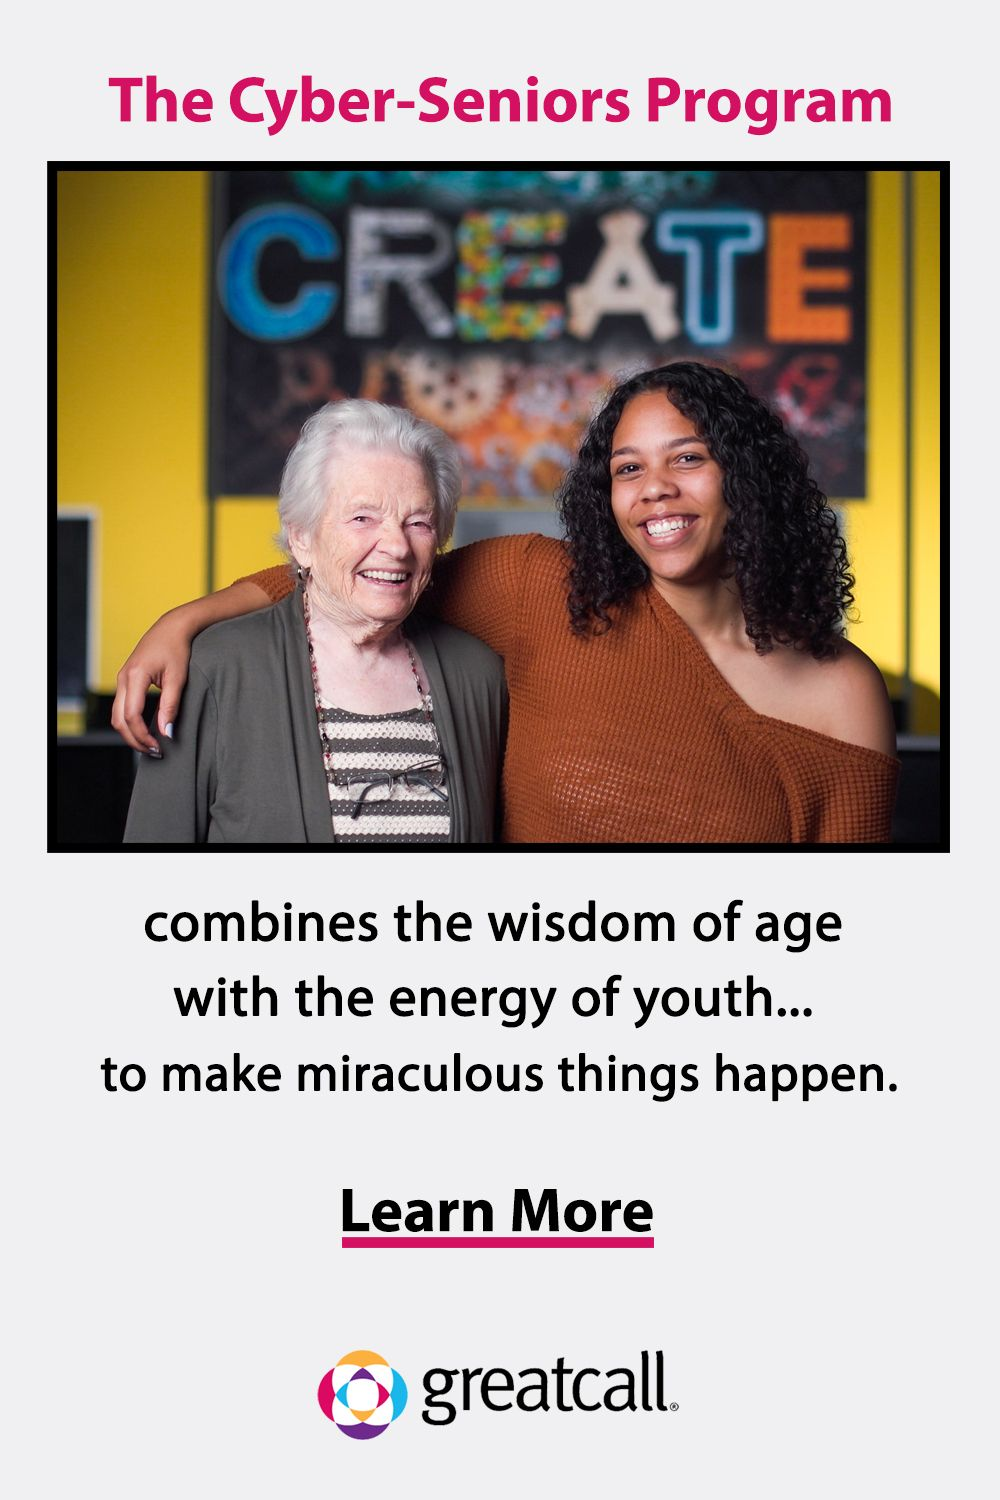 The Cyber-Seniors program brings two generations together.